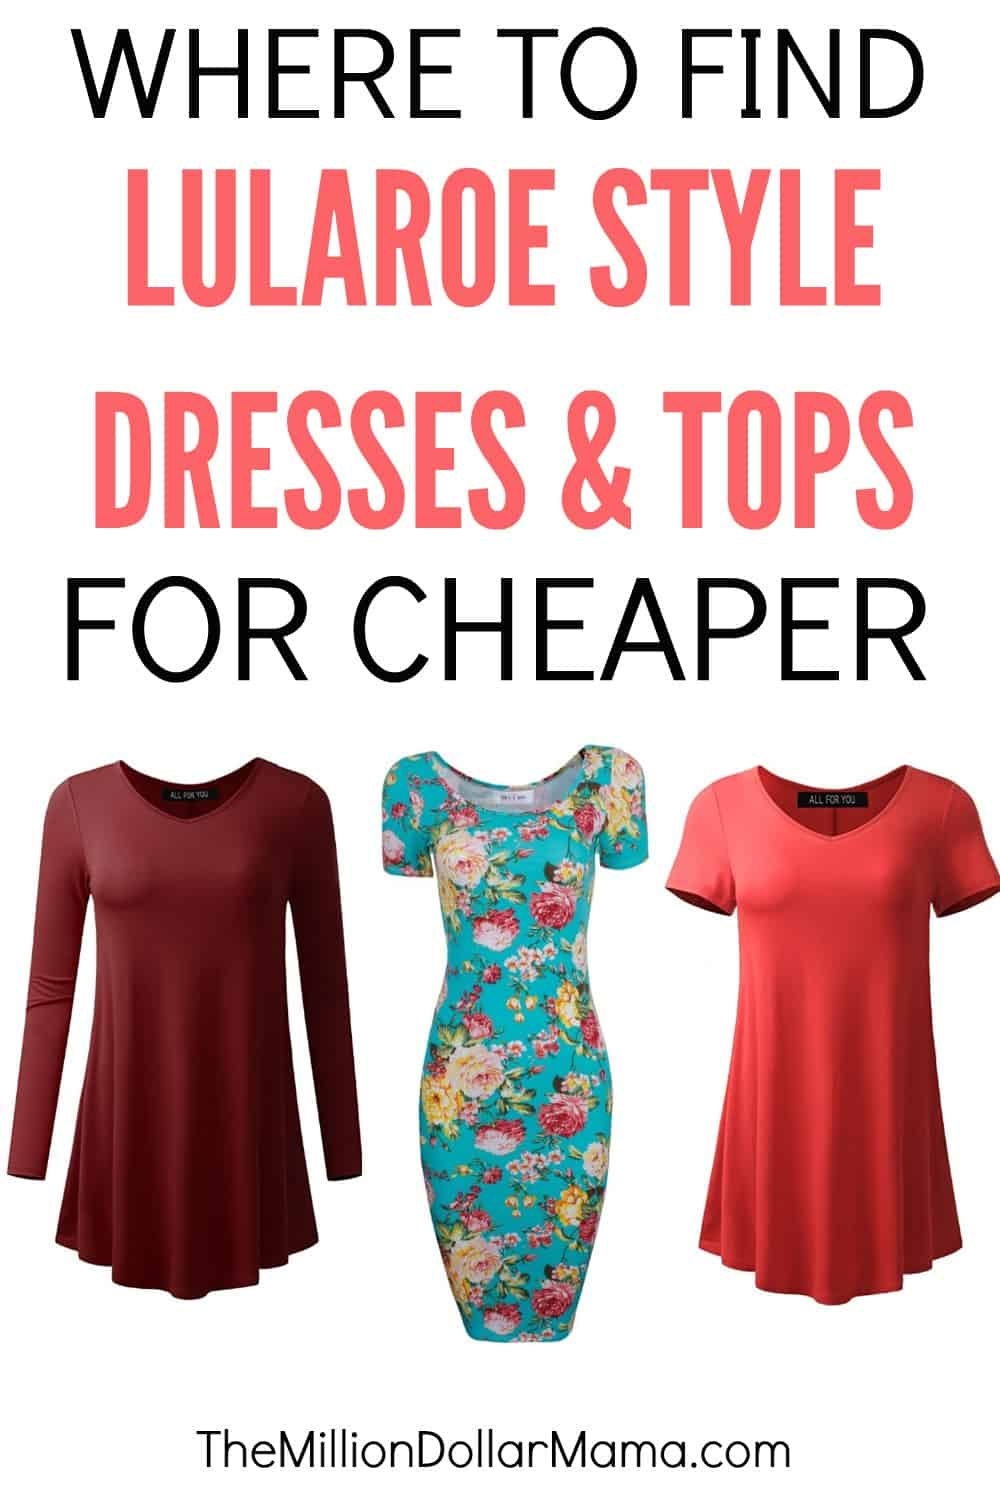 New Lularoe Styles 2020.Where To Find Lularoe Style Dresses And Tops For Cheaper